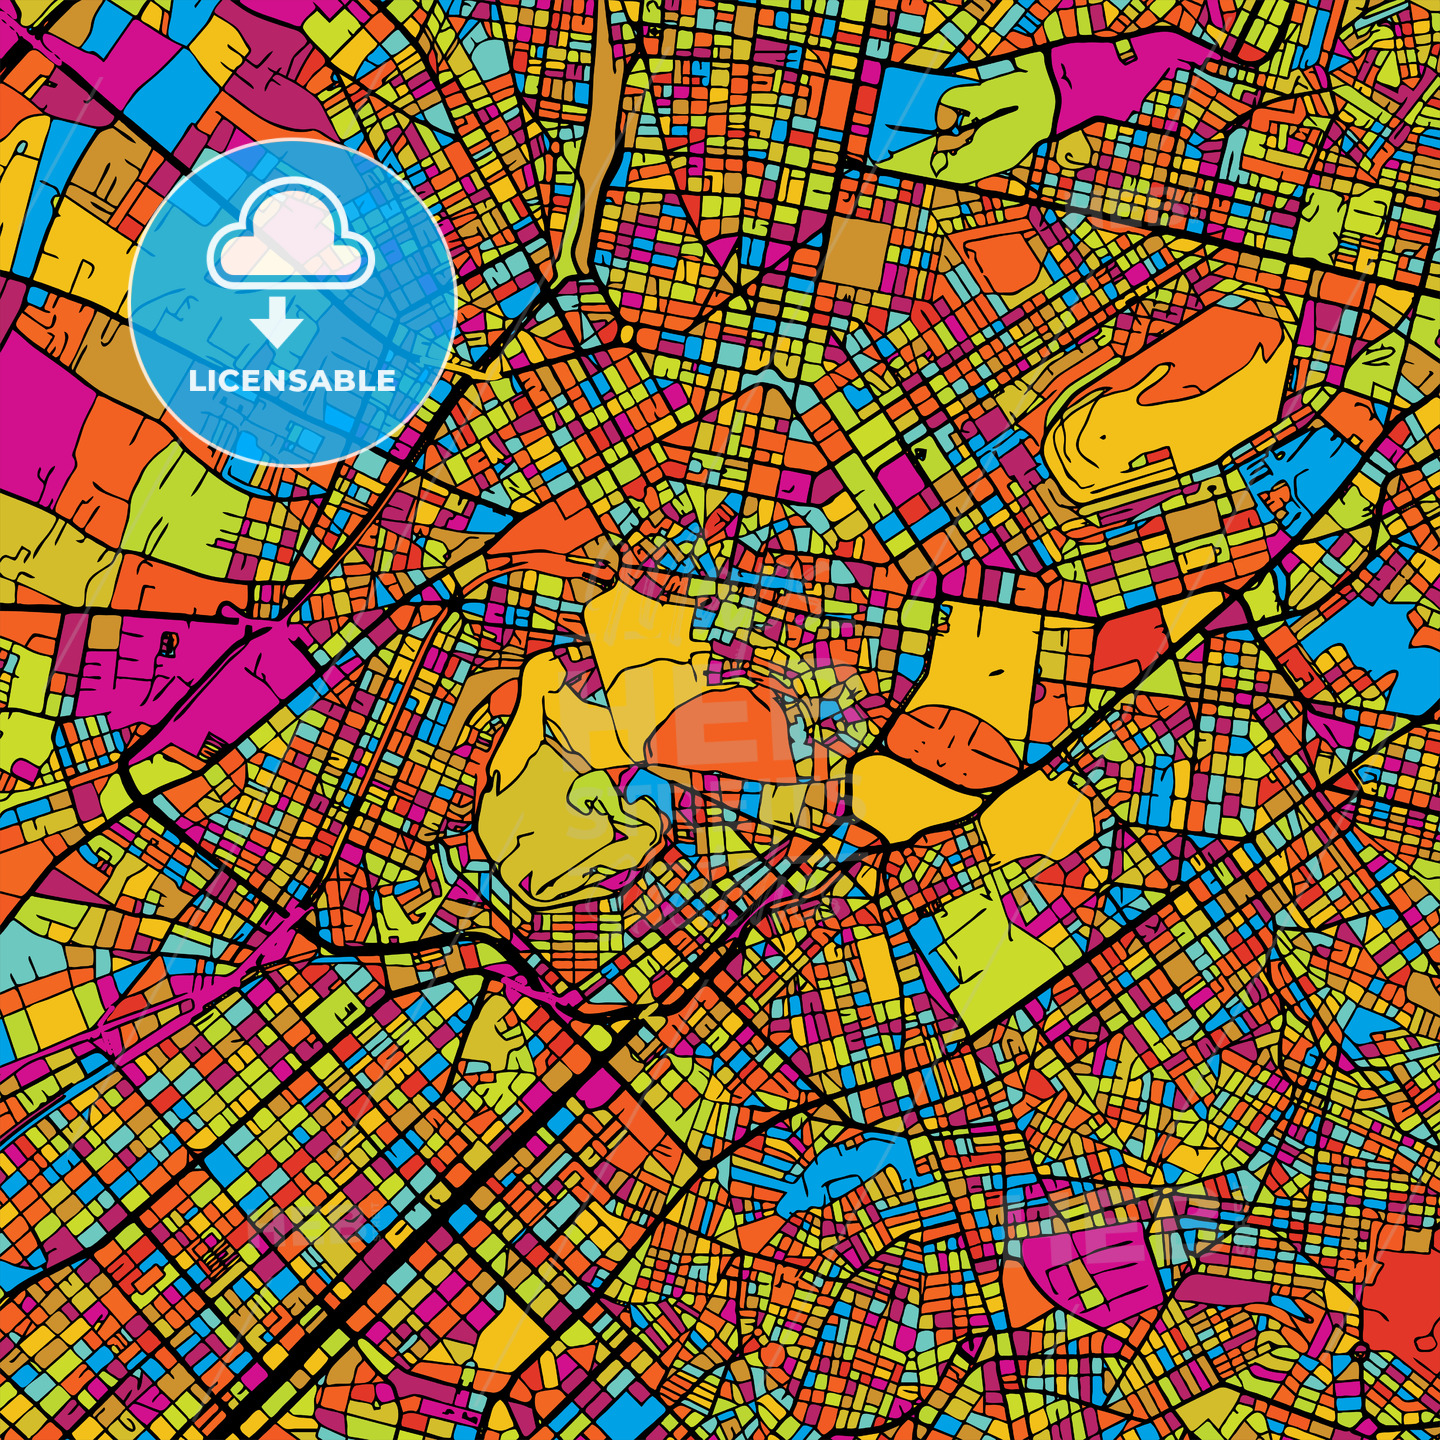 Athens Colorful Vector Map on Black - HEBSTREIT's Sketches